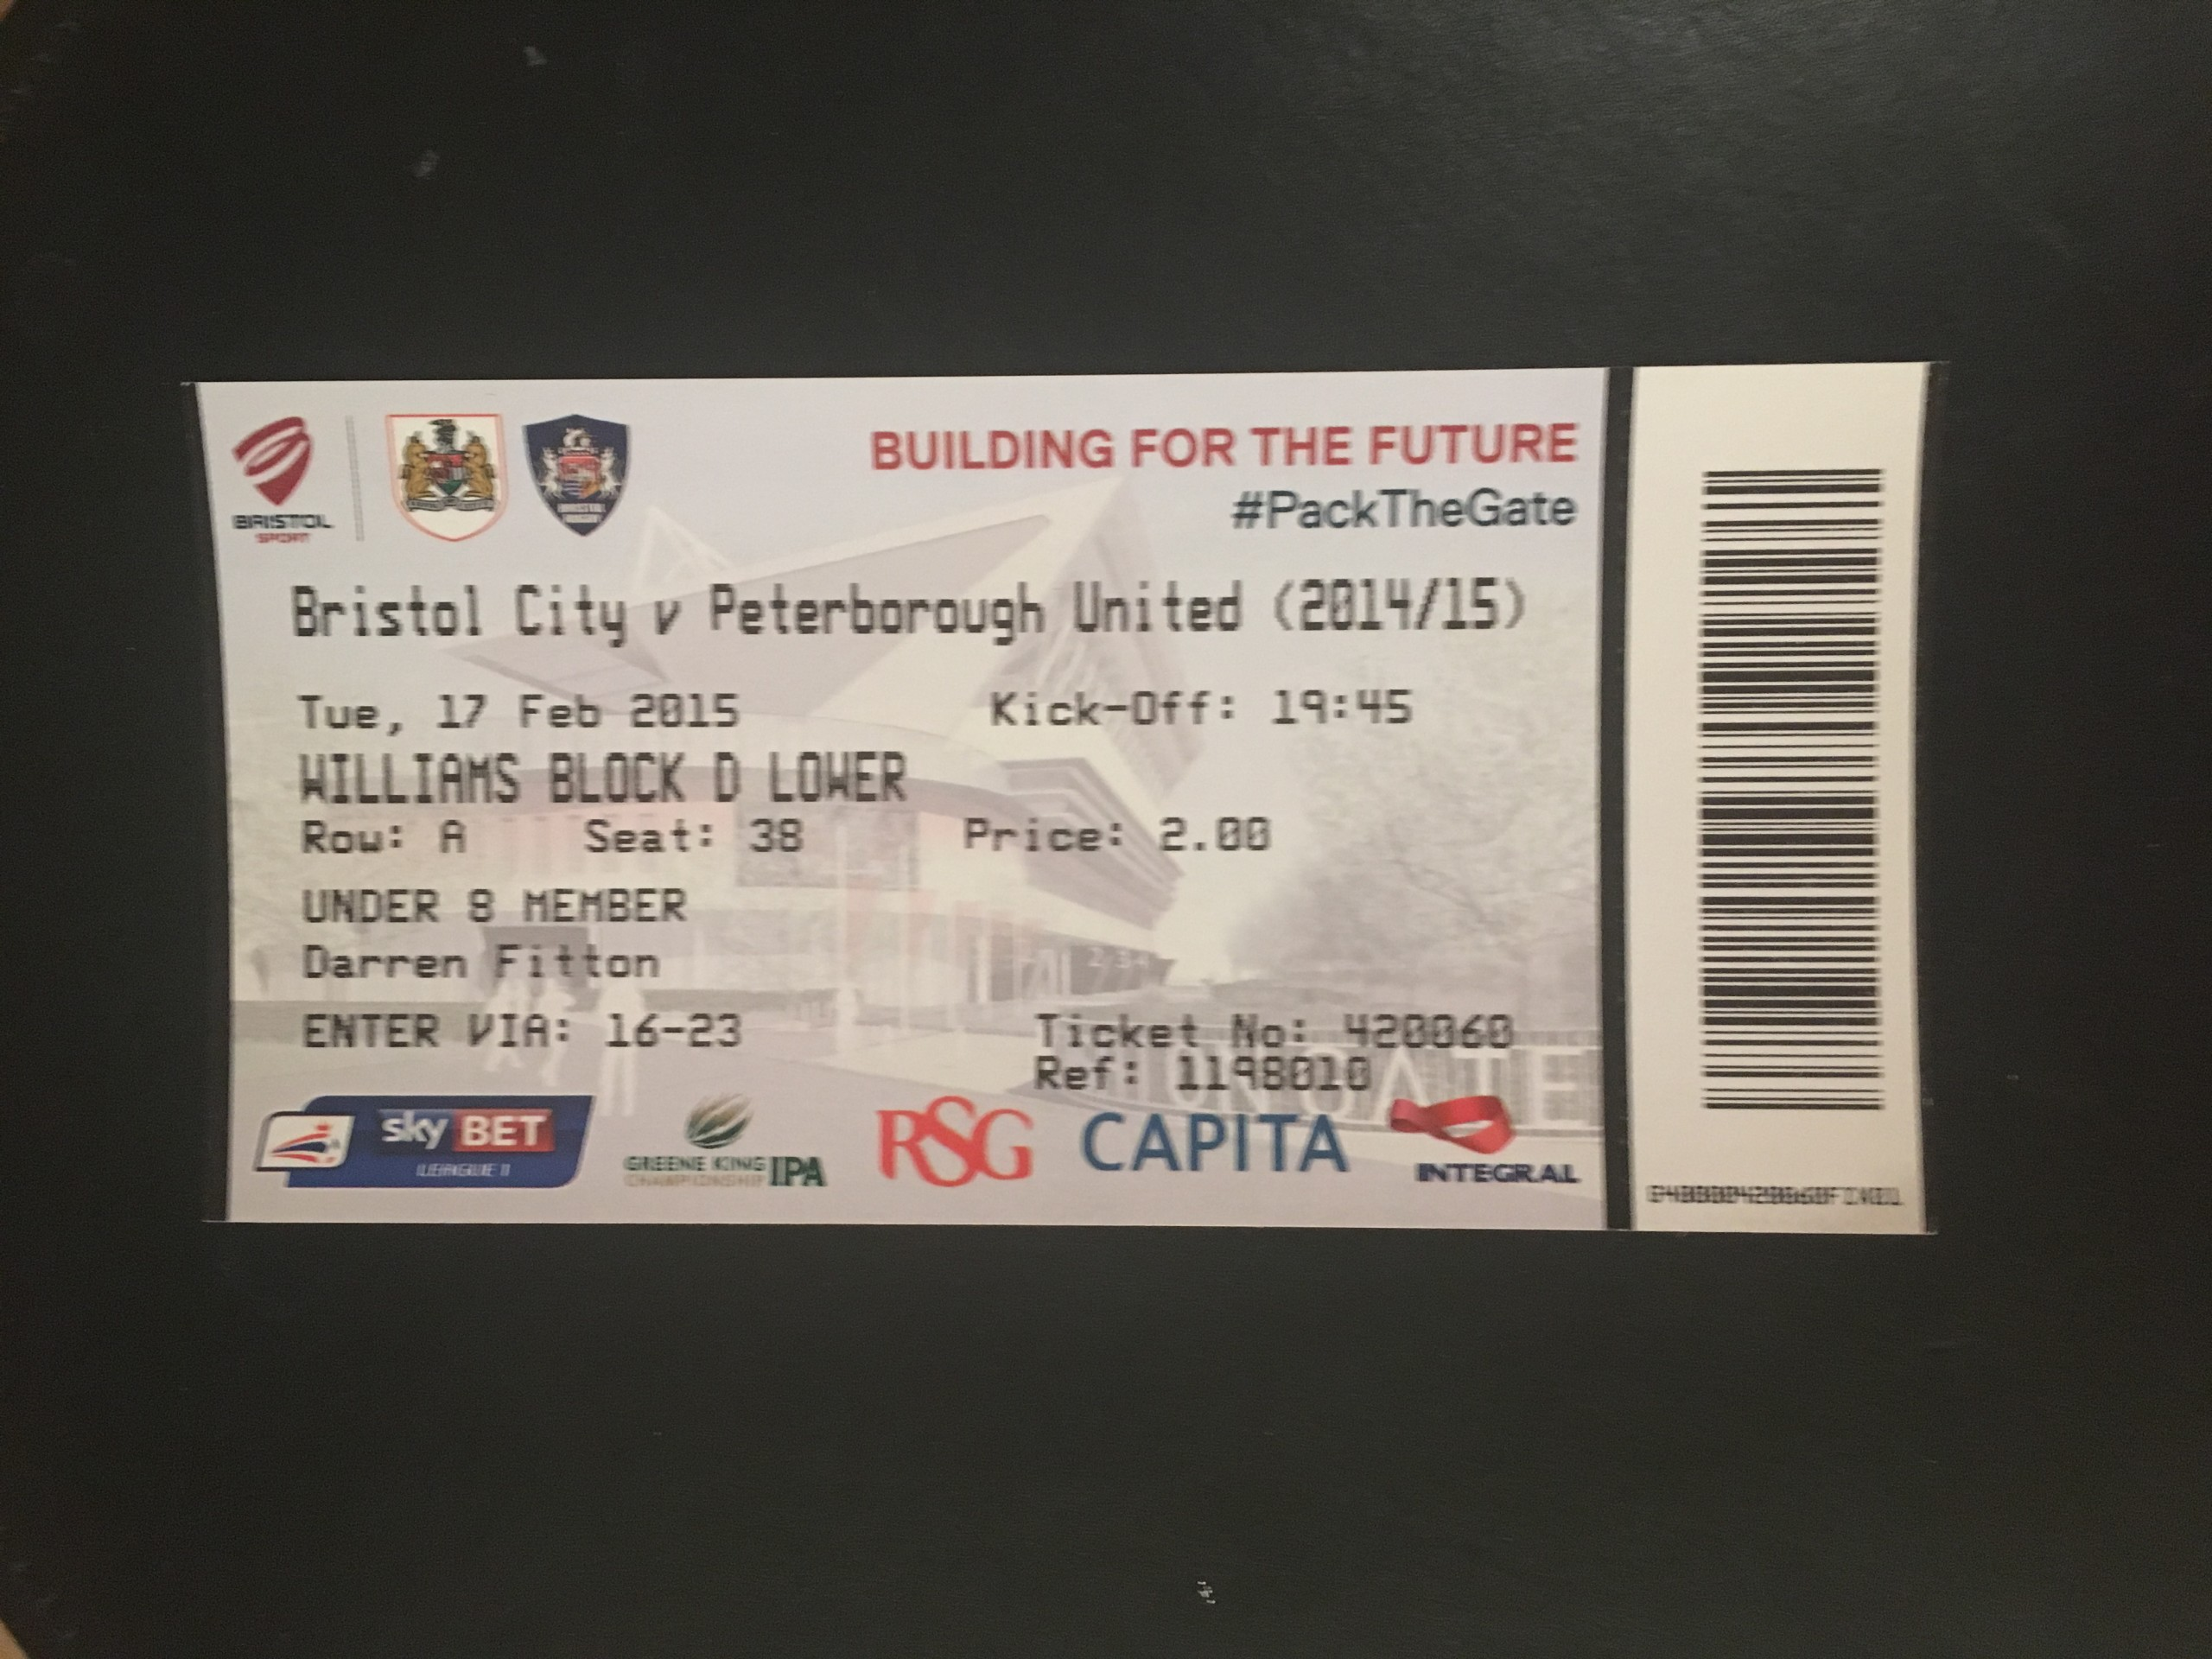 Bristol City v Peterborough United 17-02-2015 Ticket